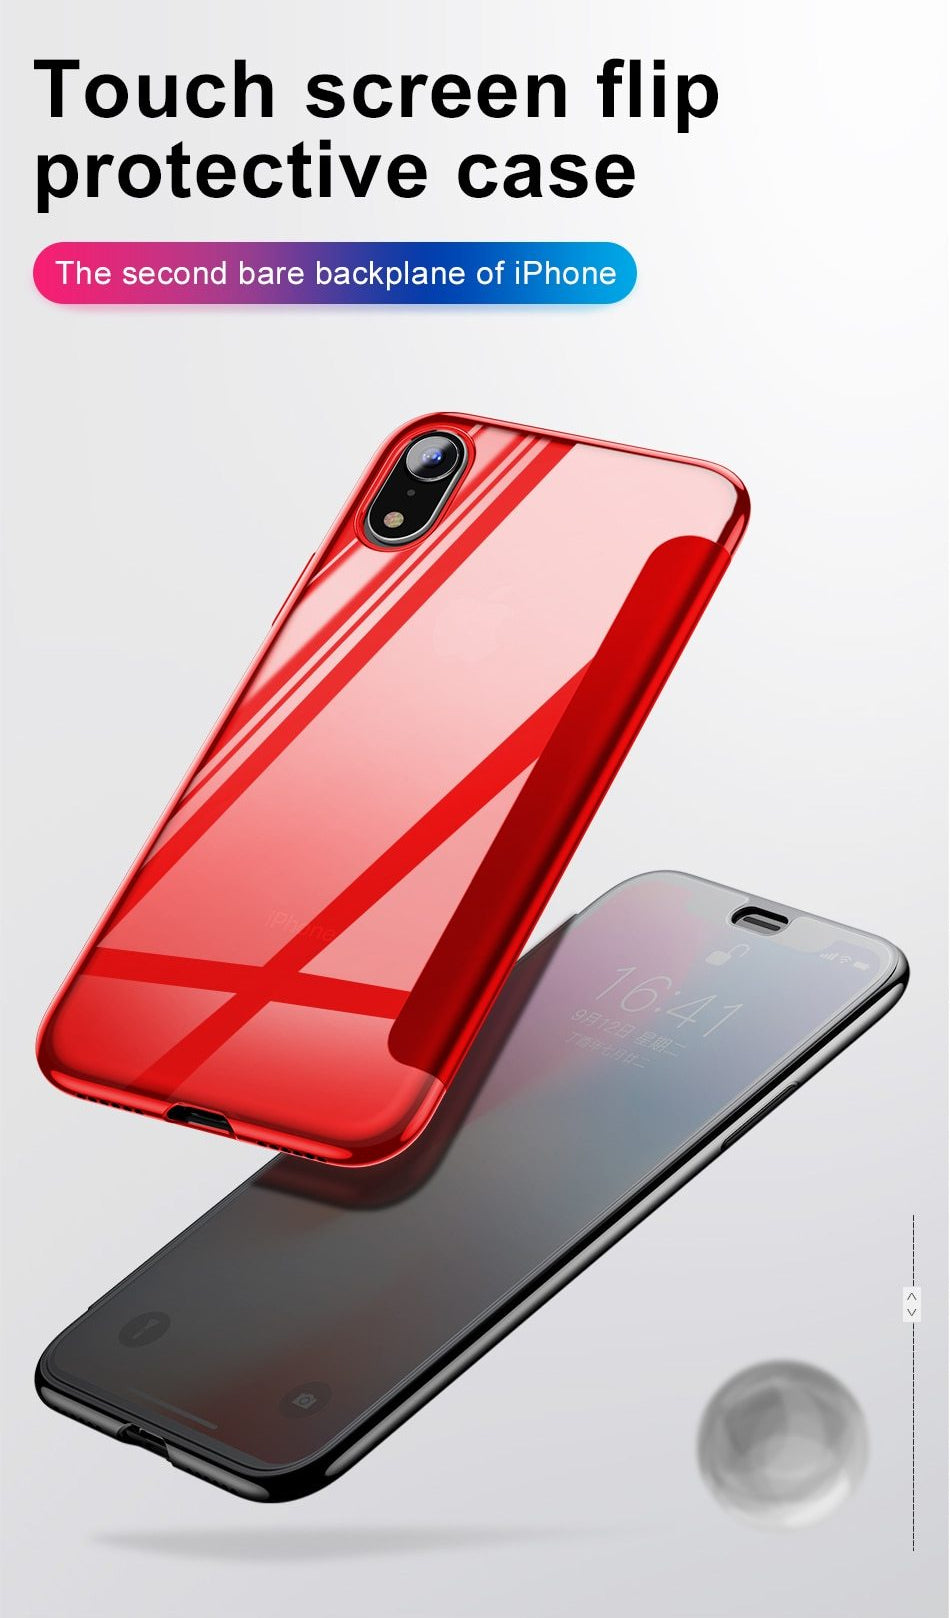 Luxury Touch Screen Flip Case For iPhone XS Max XR X S R XS Max With Tempered Glass Full Protective Back Cover Flip Case For iPhone XS Max